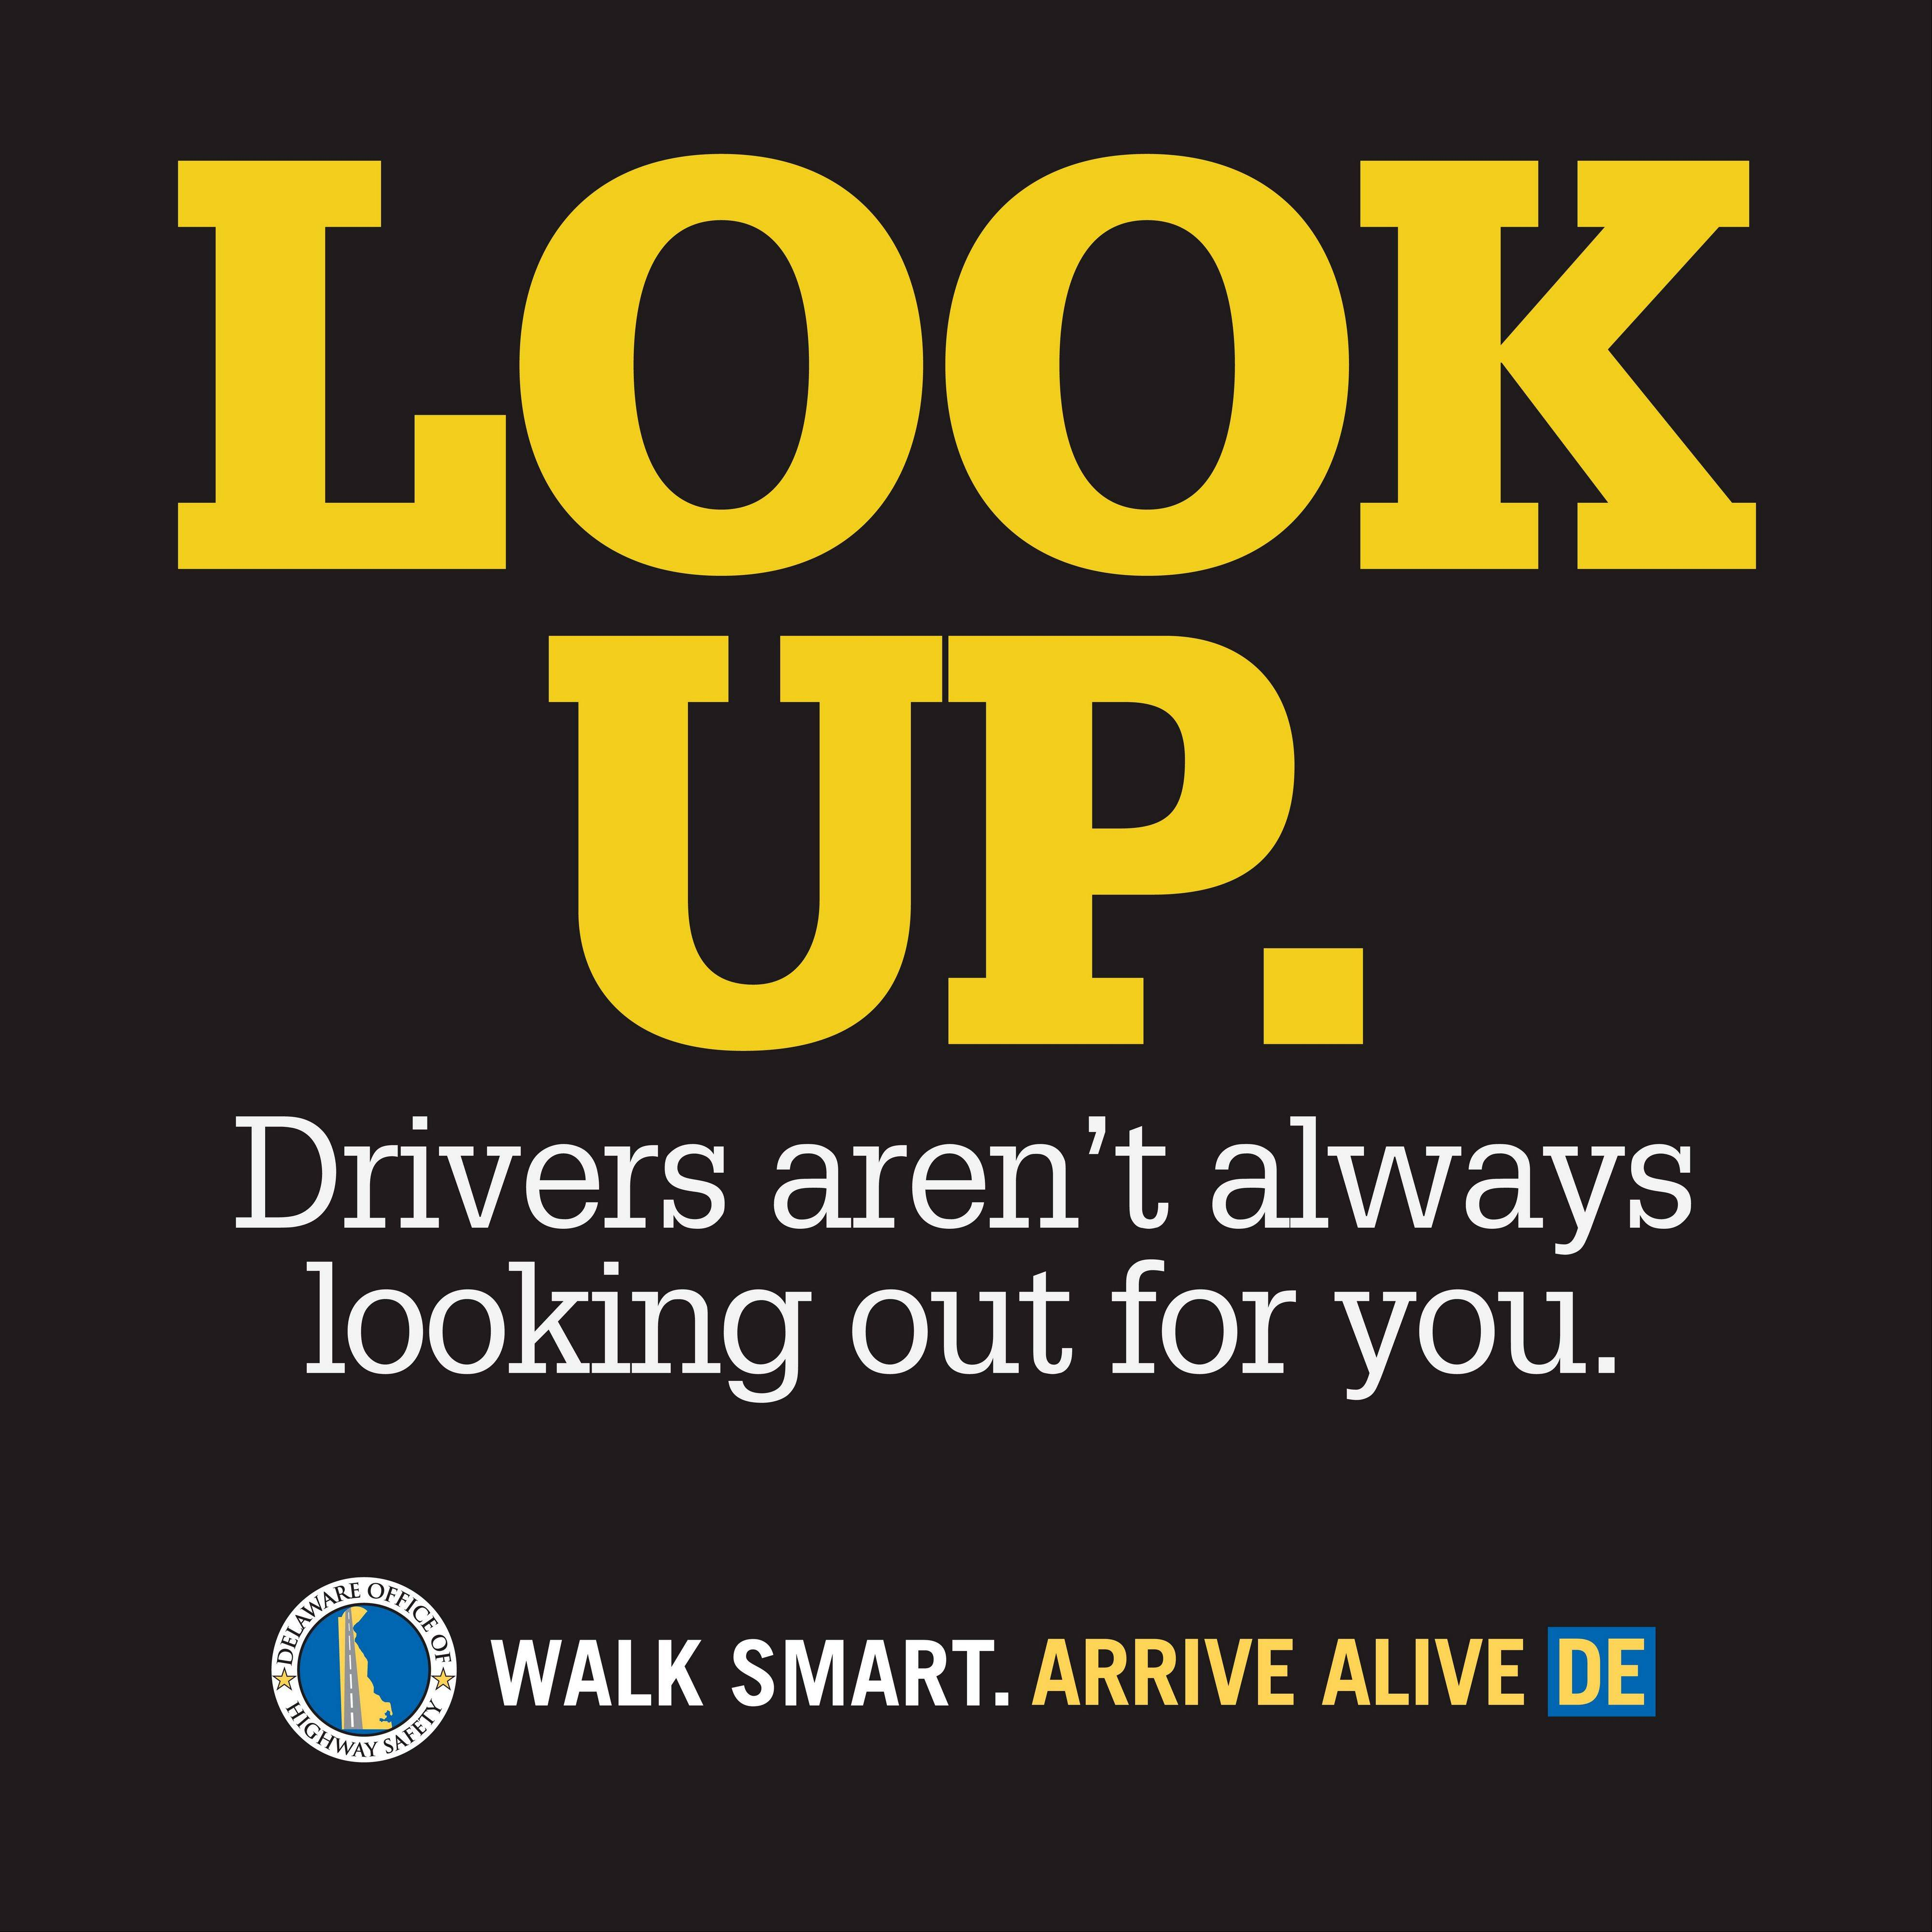 A Delaware State Office of Highway Safety decal aimed at getting distracted pedestrians to look up from their mobile devices and watch where they�re walking. The decals are 2 feet by 2 feet, made of nonskid material.